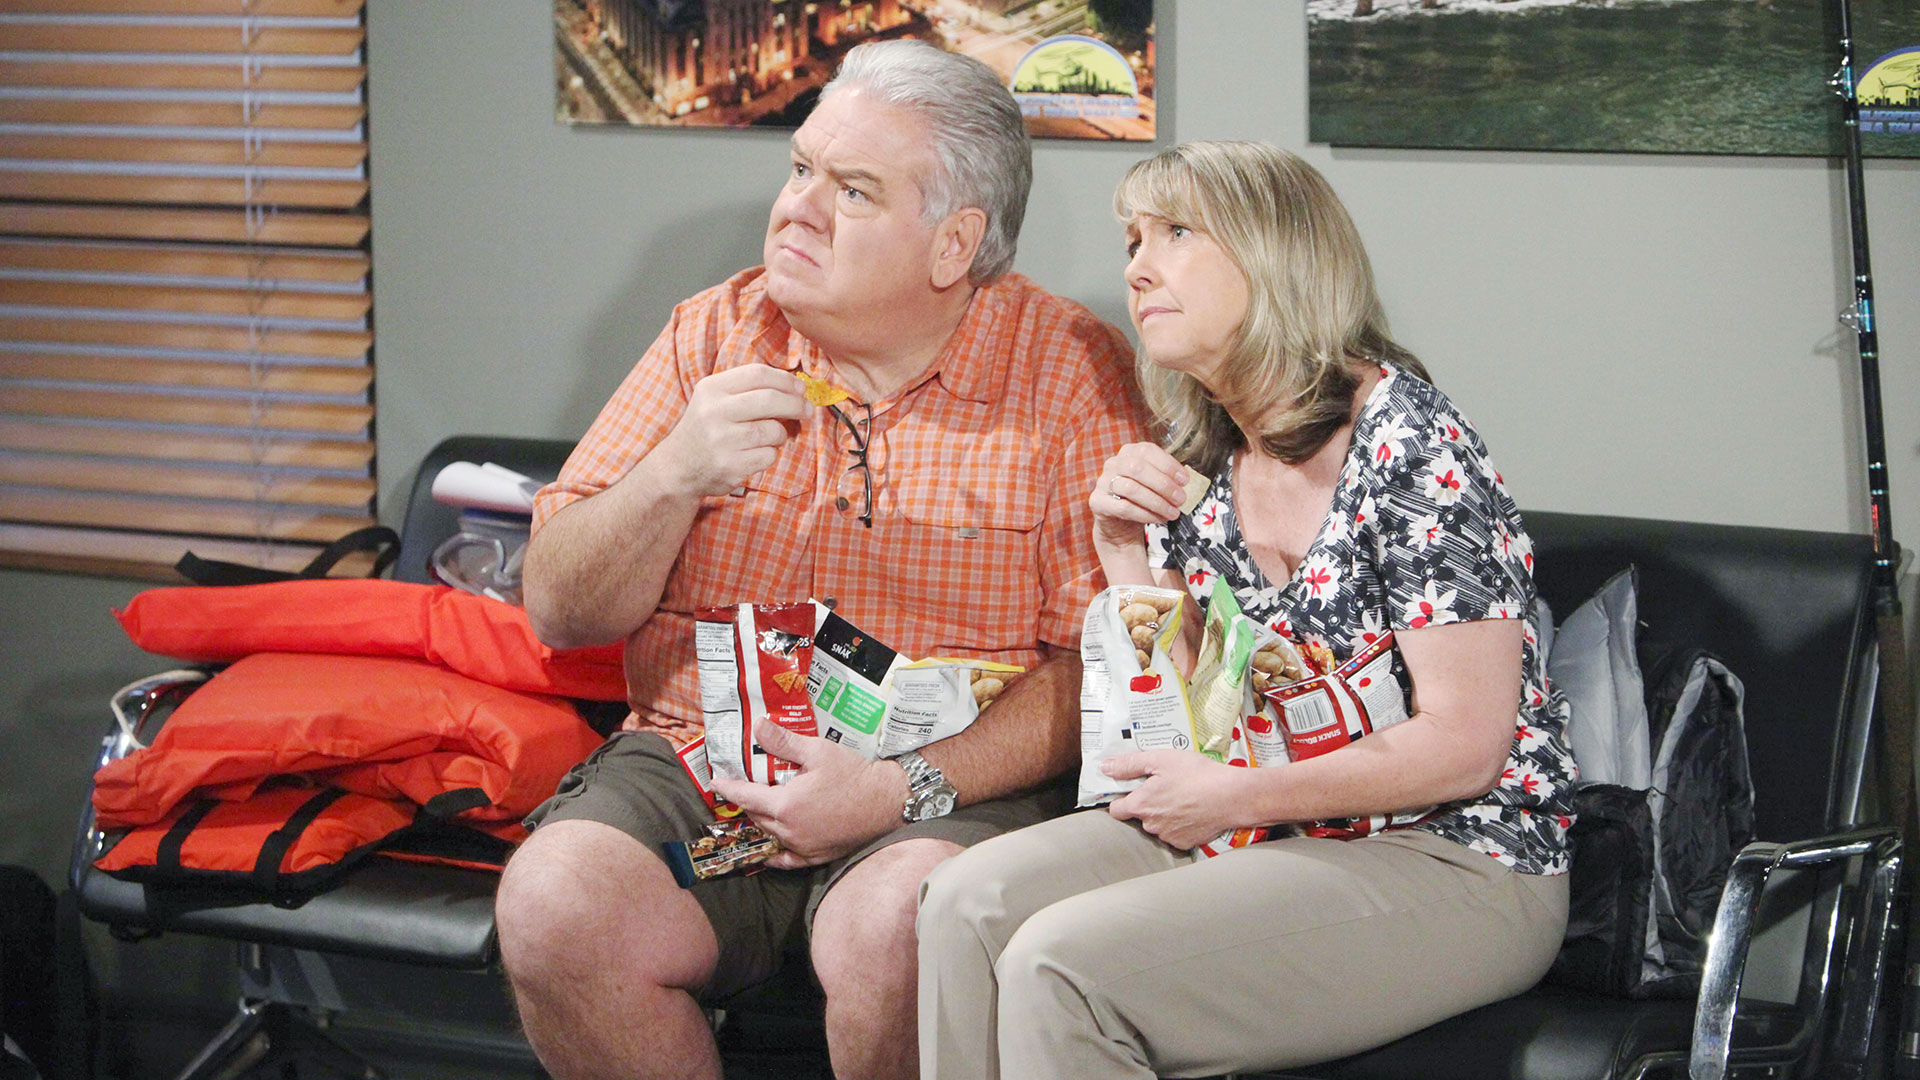 Jim O'Heir and Monica Horan